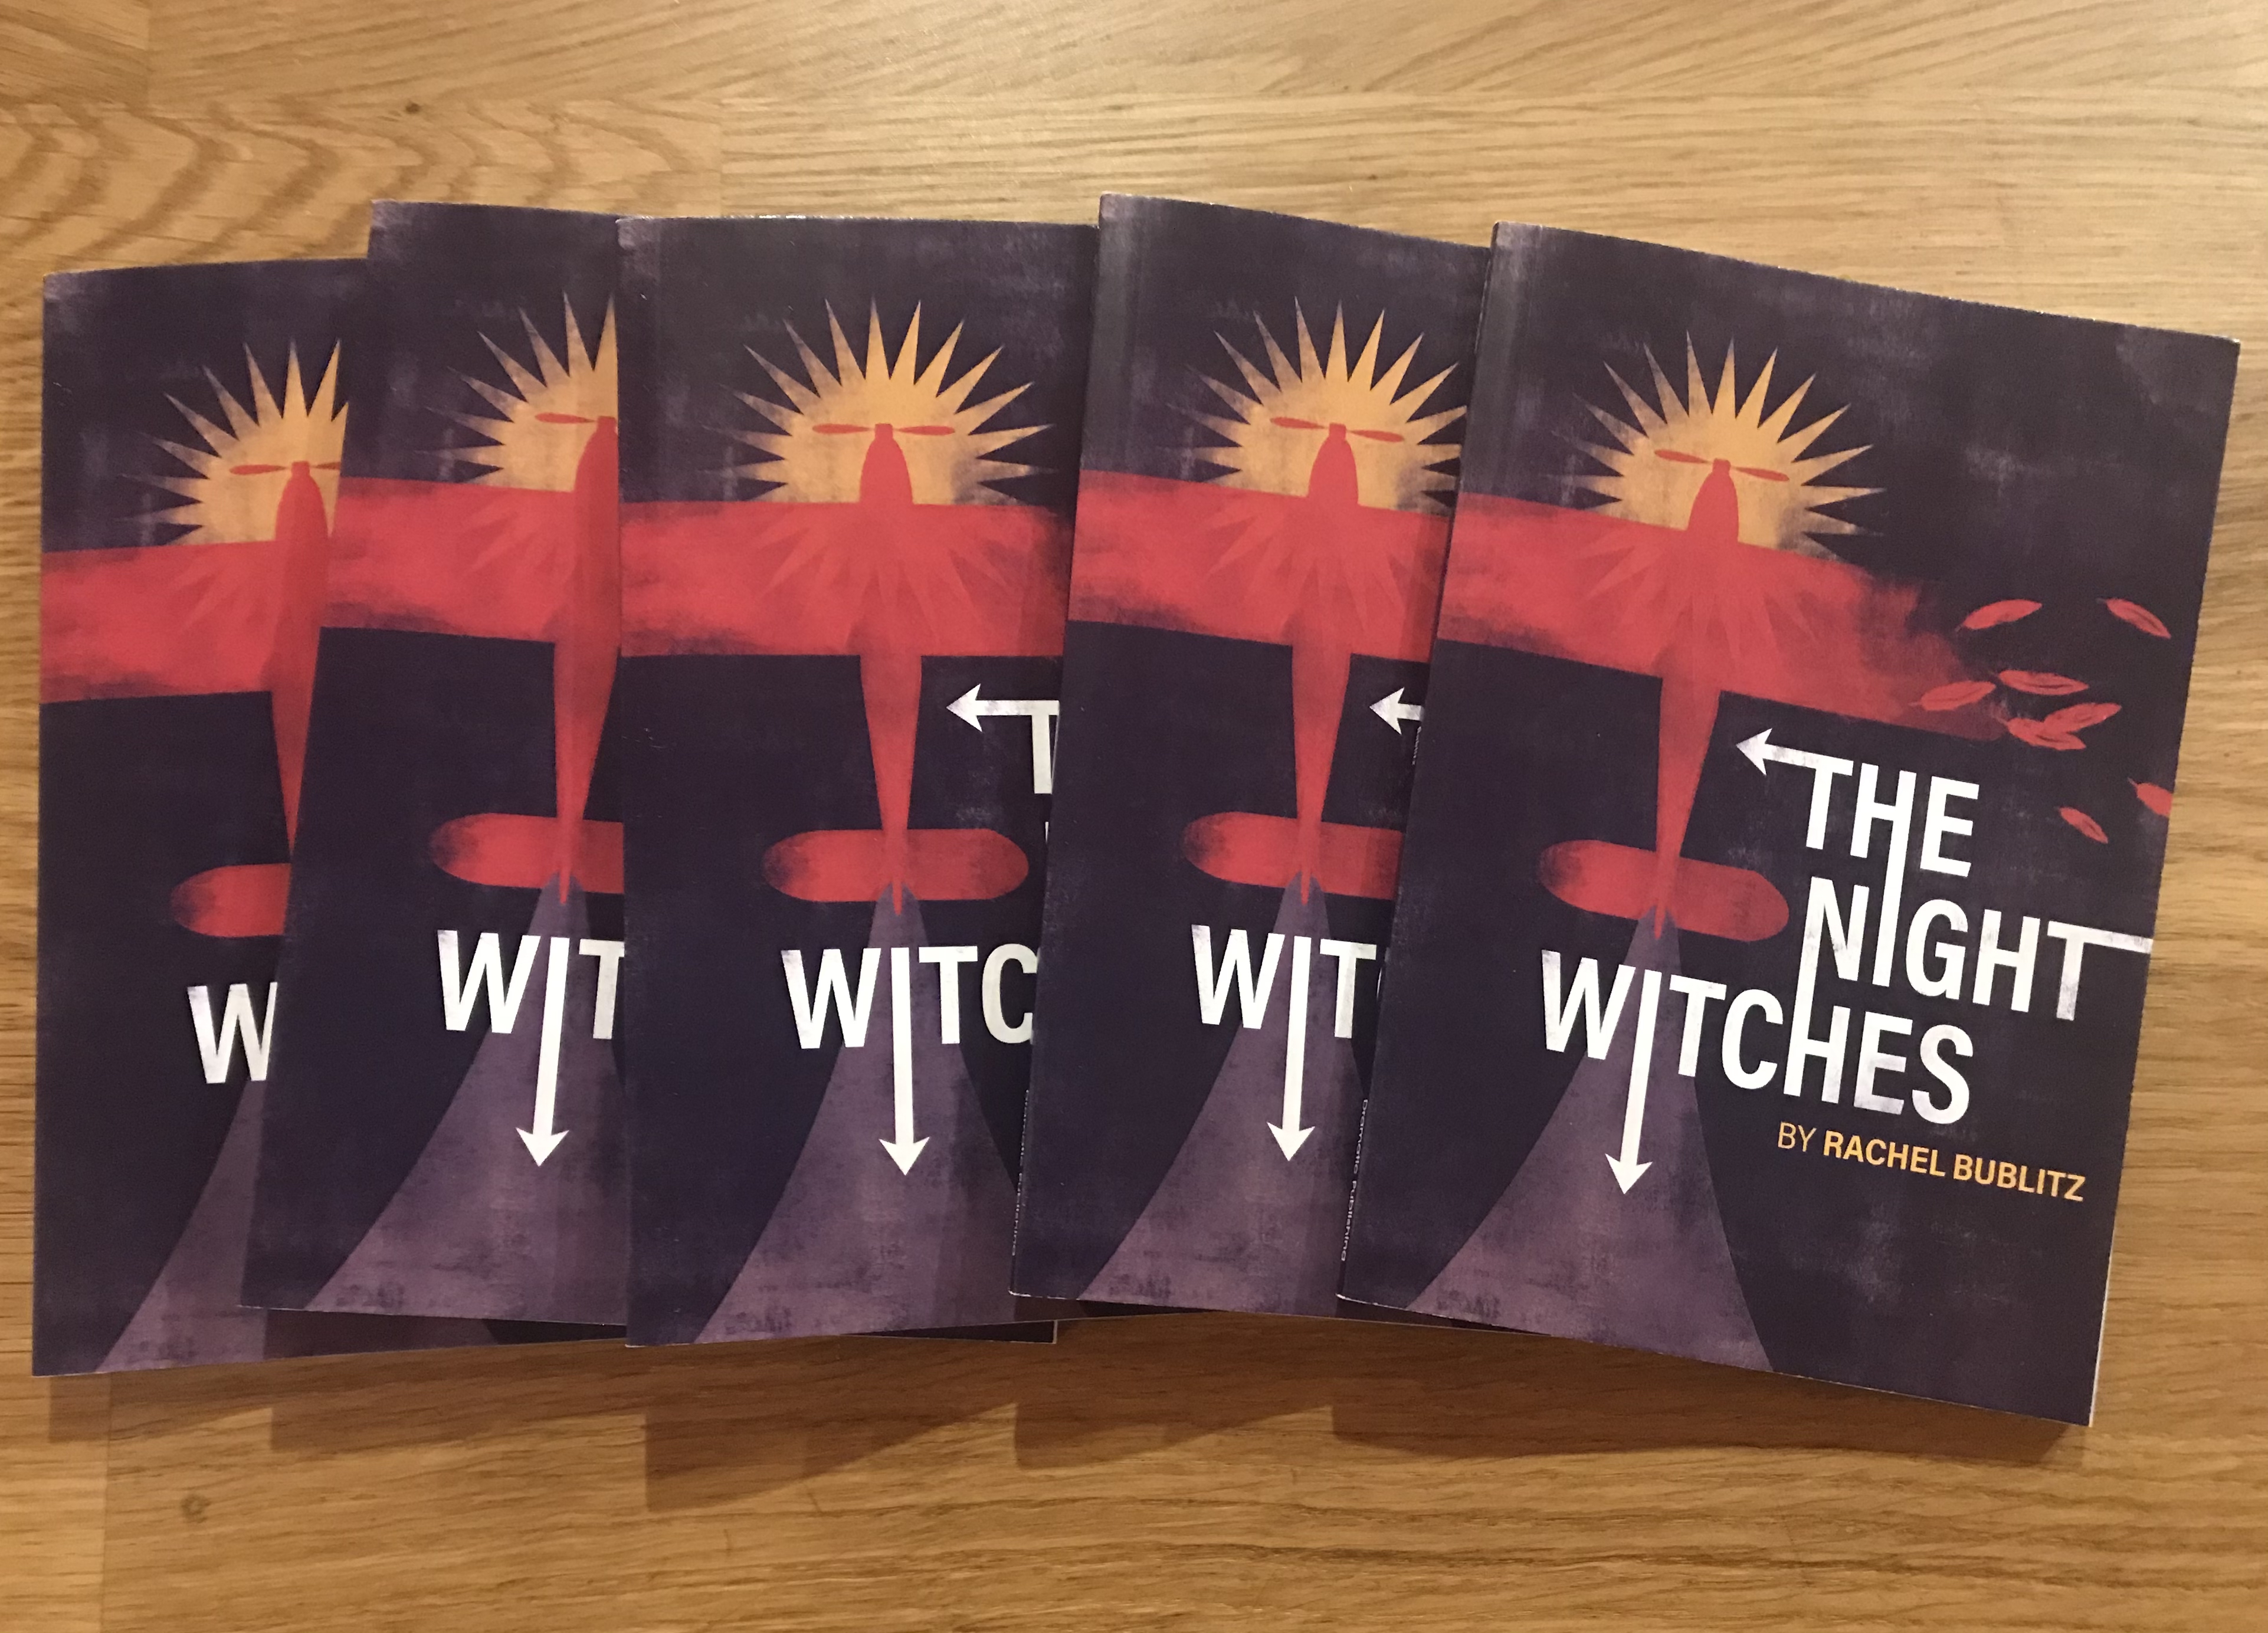 Photo of a stack of THE NIGHT WITCHES scripts from Dramatic Publishing.